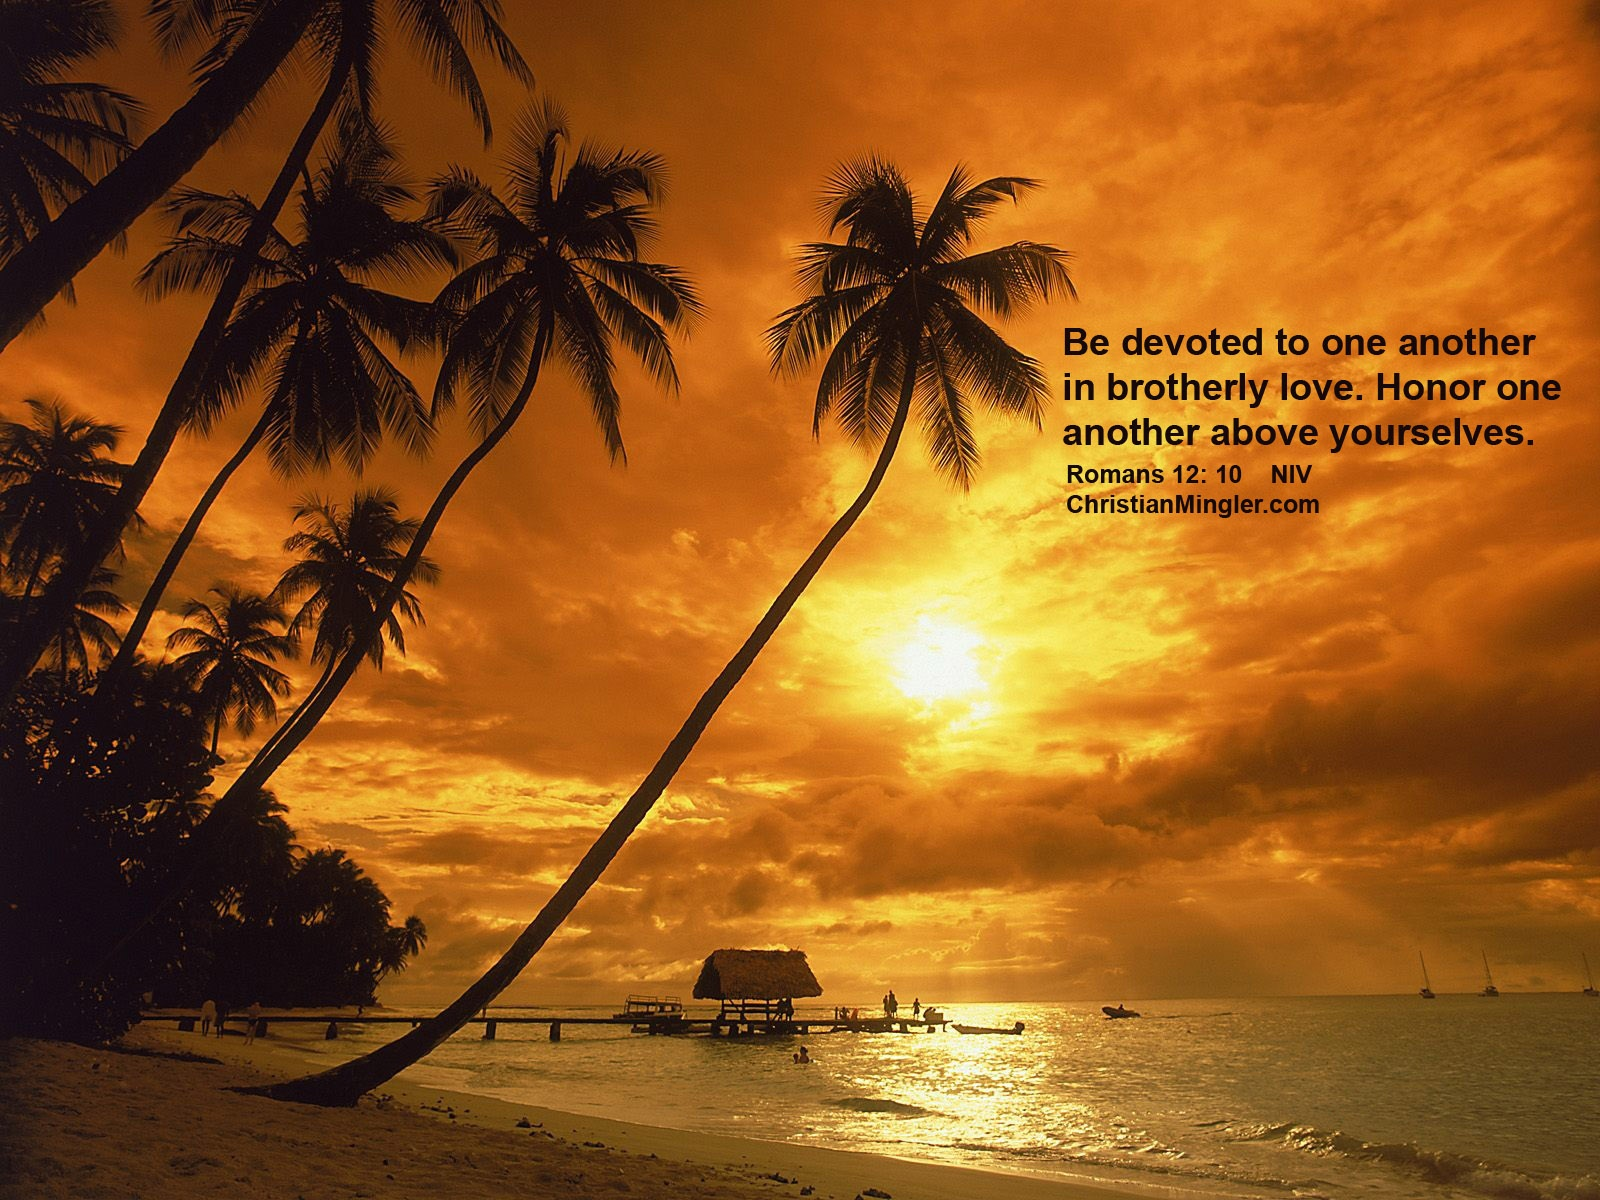 Christian Sunset Wallpaper Romans 12 10 ChristianMingler 1600x1200